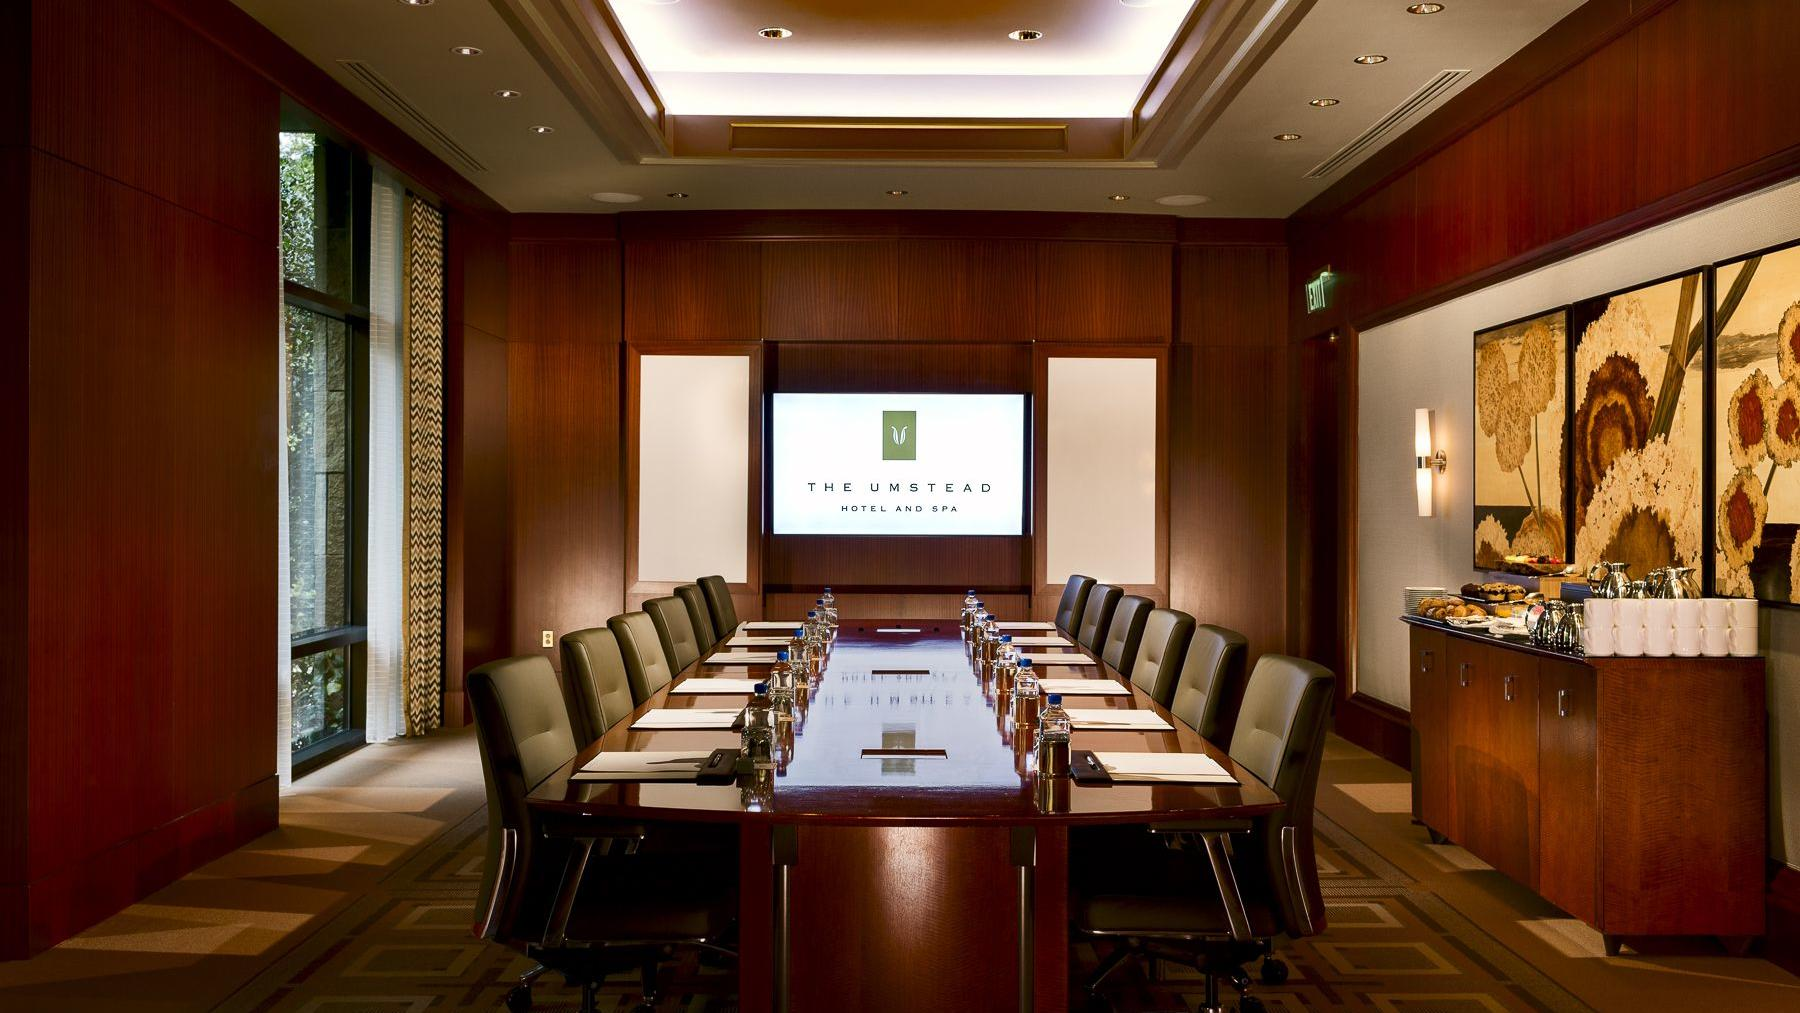 boardroom with long table and chairs